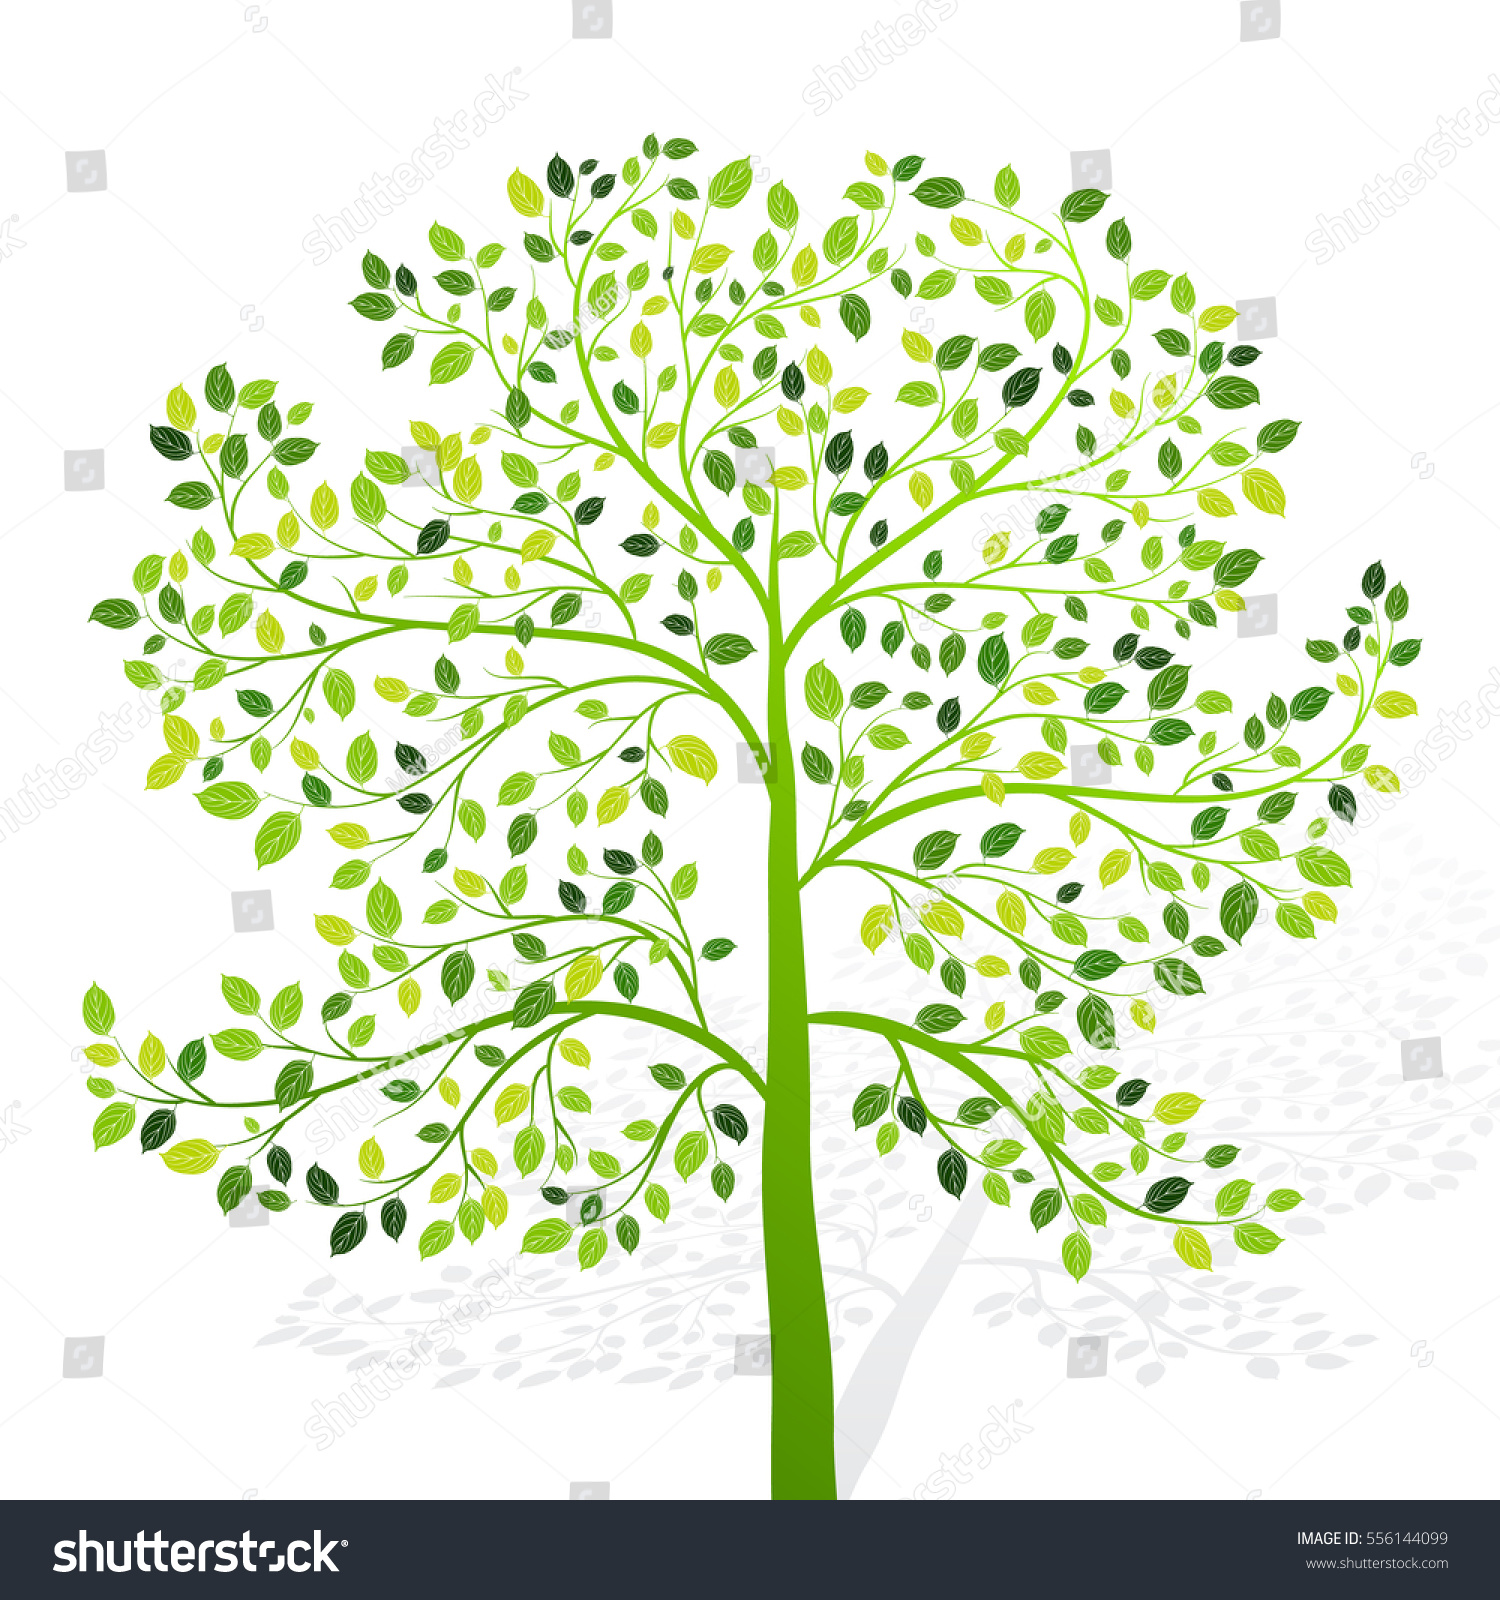 Green Tree Leaves On White Background Stock Vector (2018) 556144099 ...